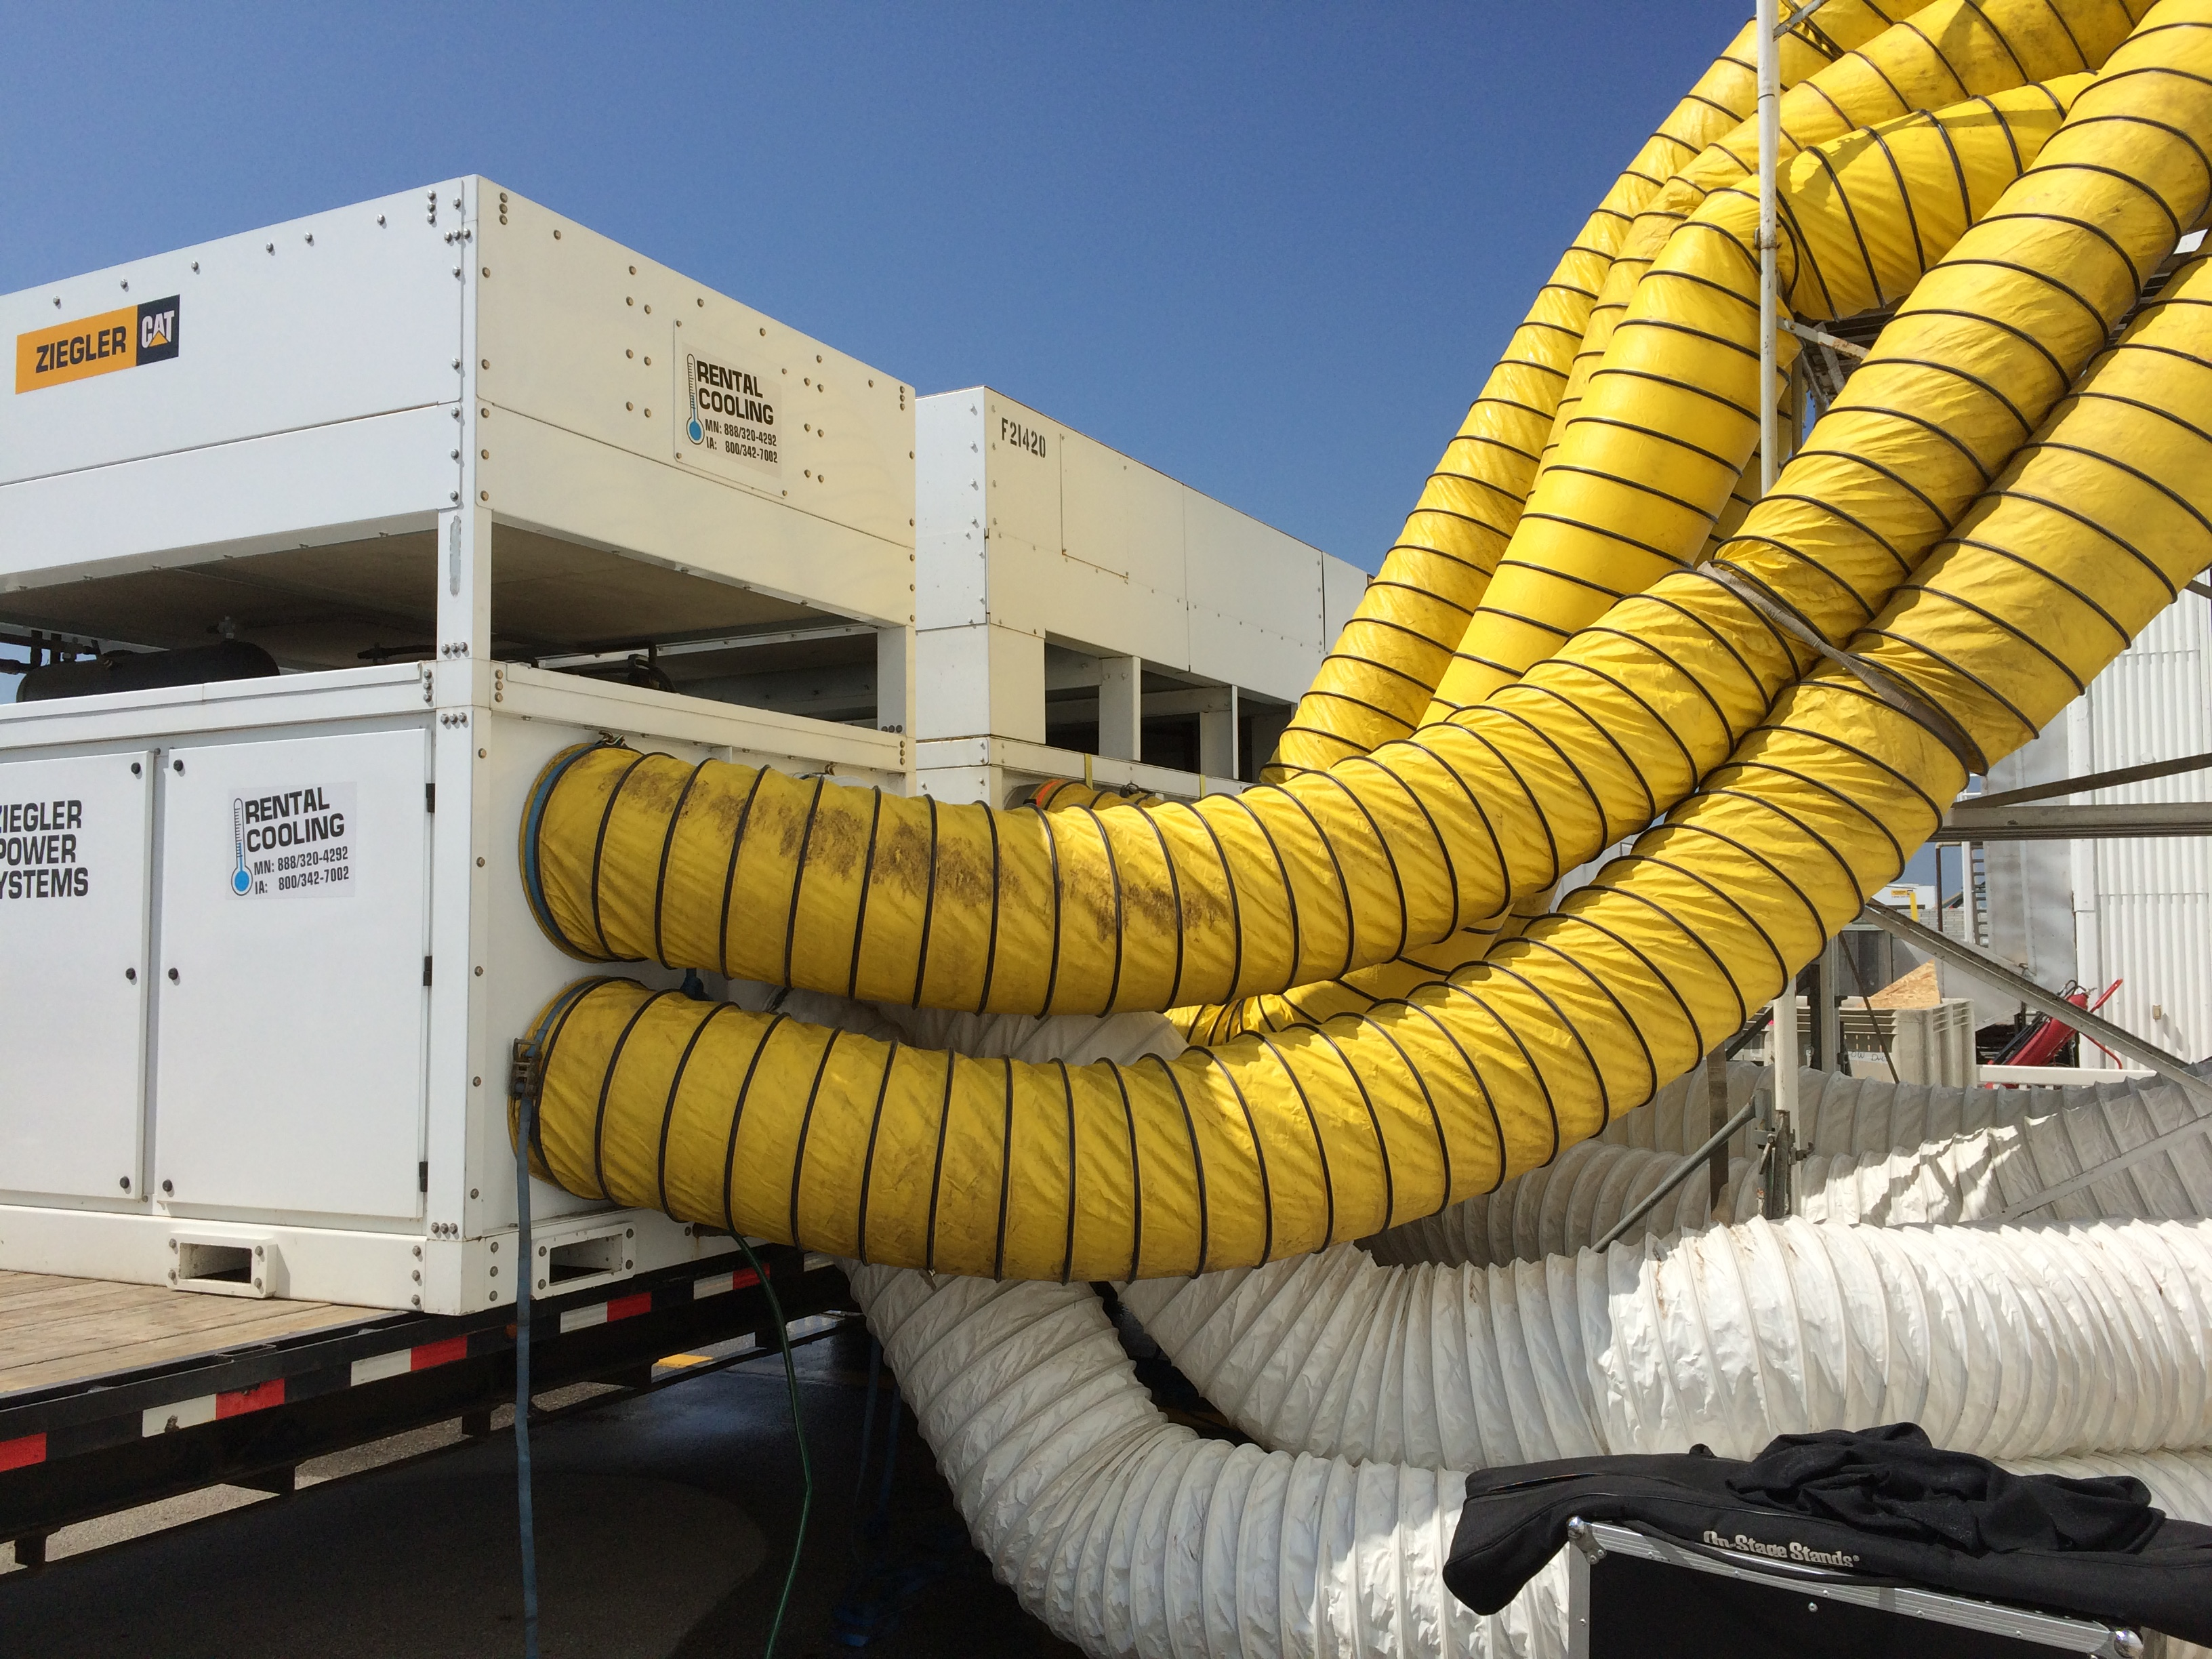 Event Air Conditioning With Speedy Setup & Installation